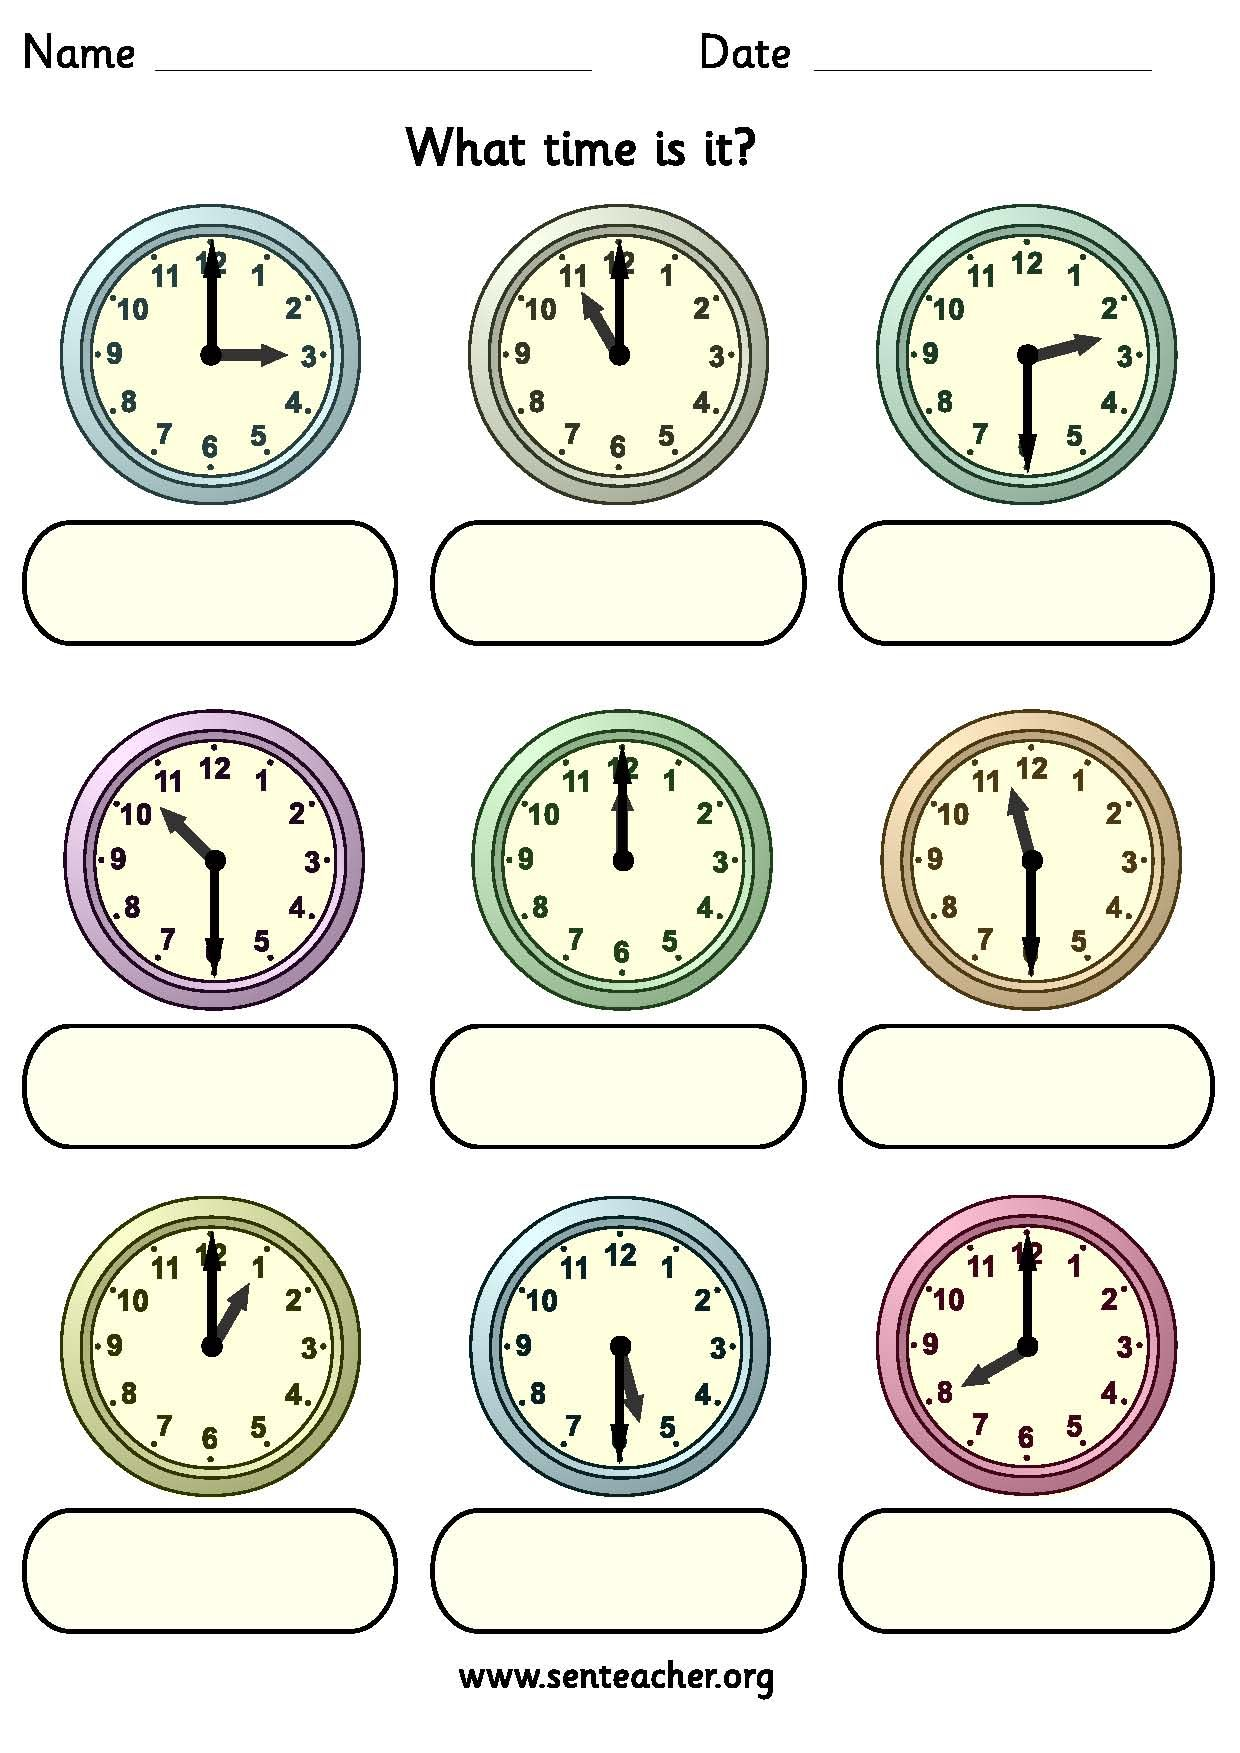 Worksheet Containing 9 Analogue Clocks Showing O Clock Or Half